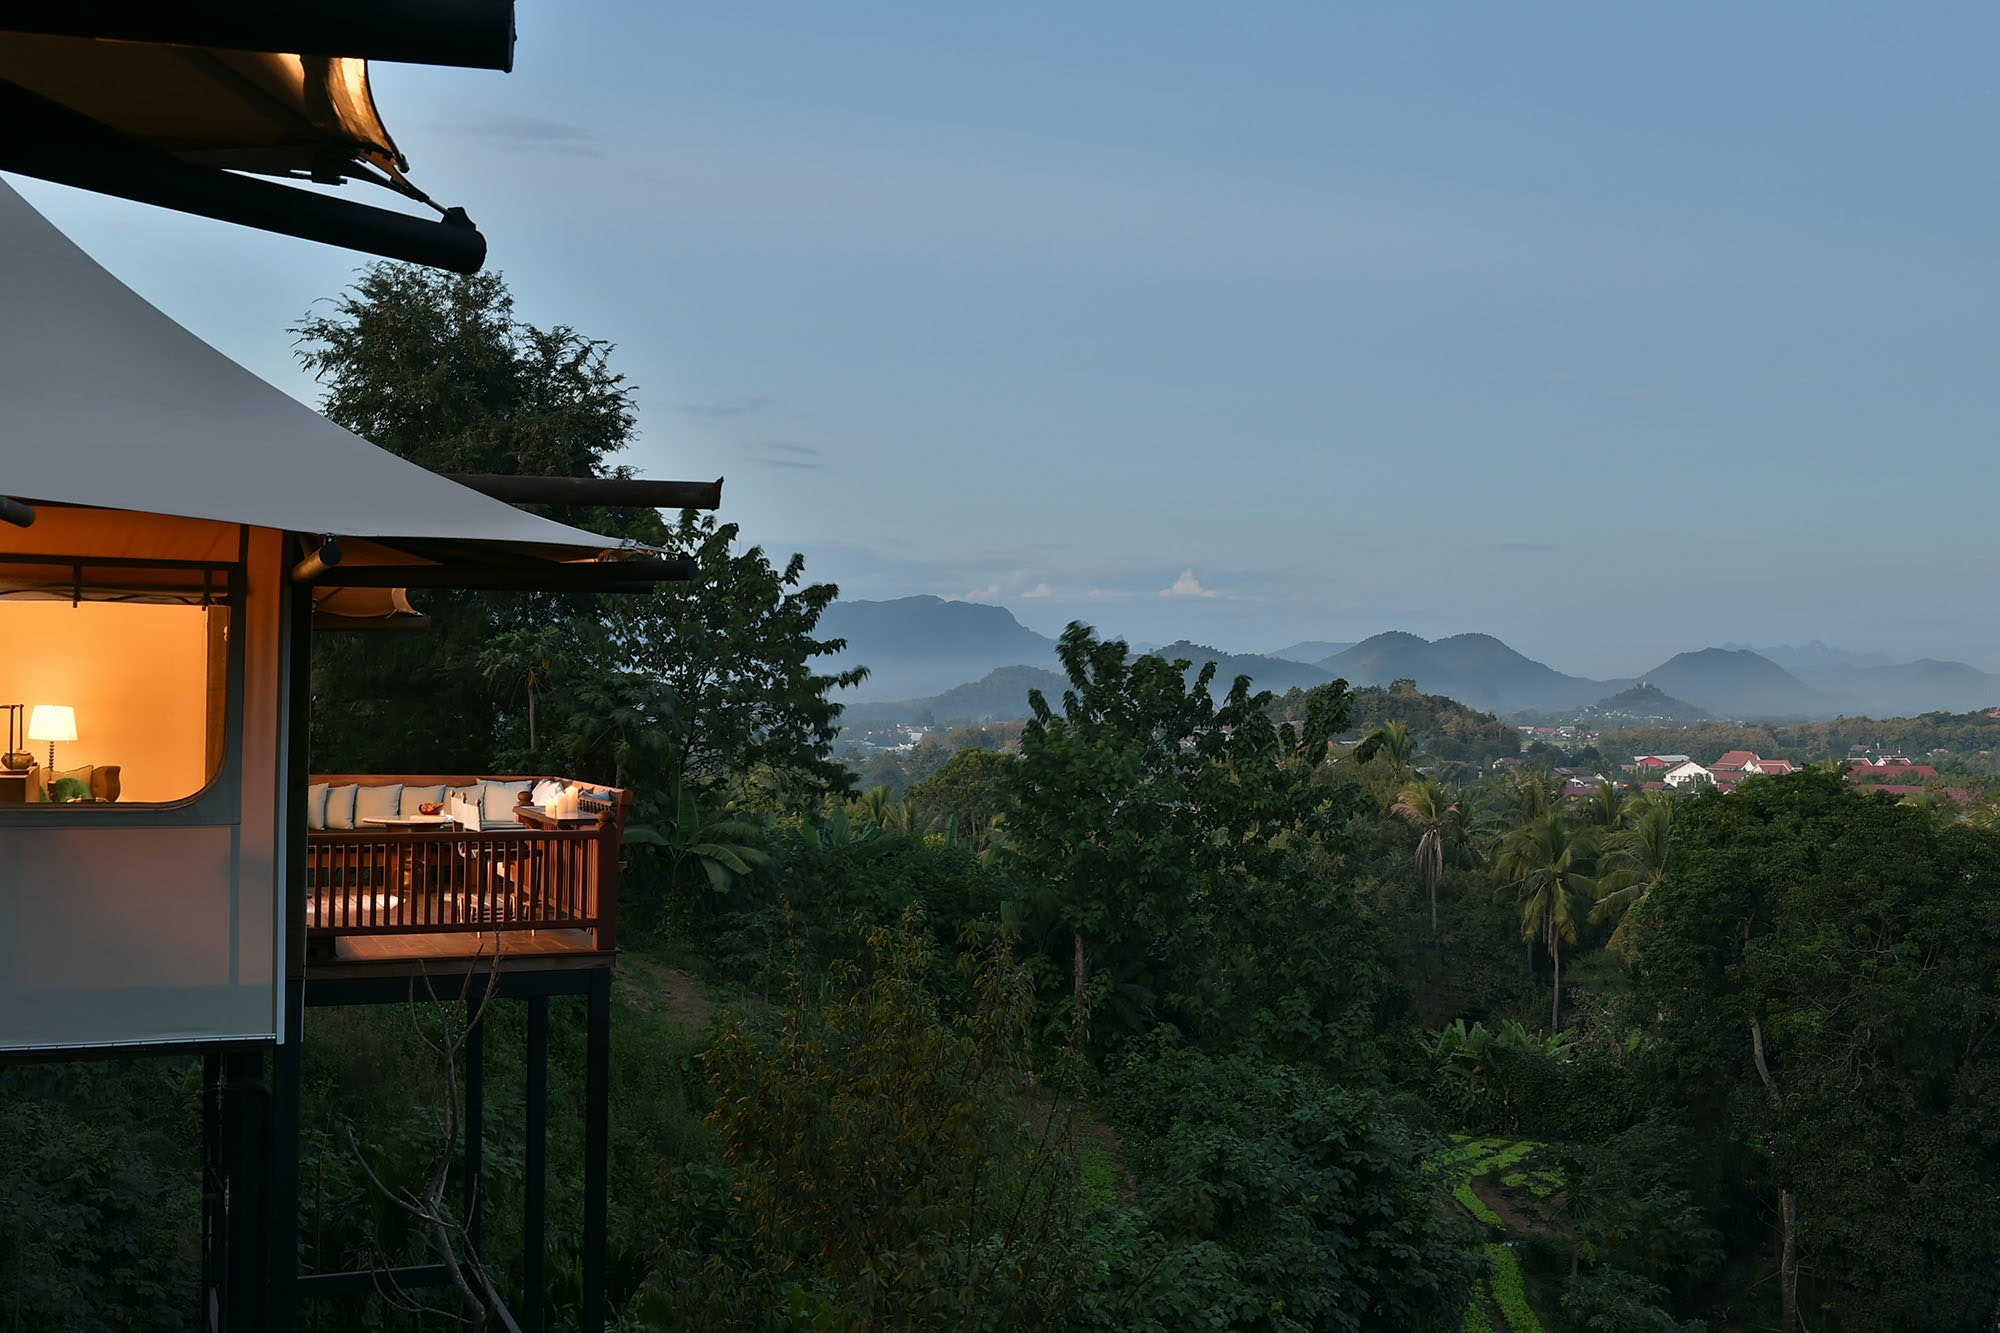 Located three miles outside of town, the new Rosewood Luang Prabang enjoys serenity and sweeping views.